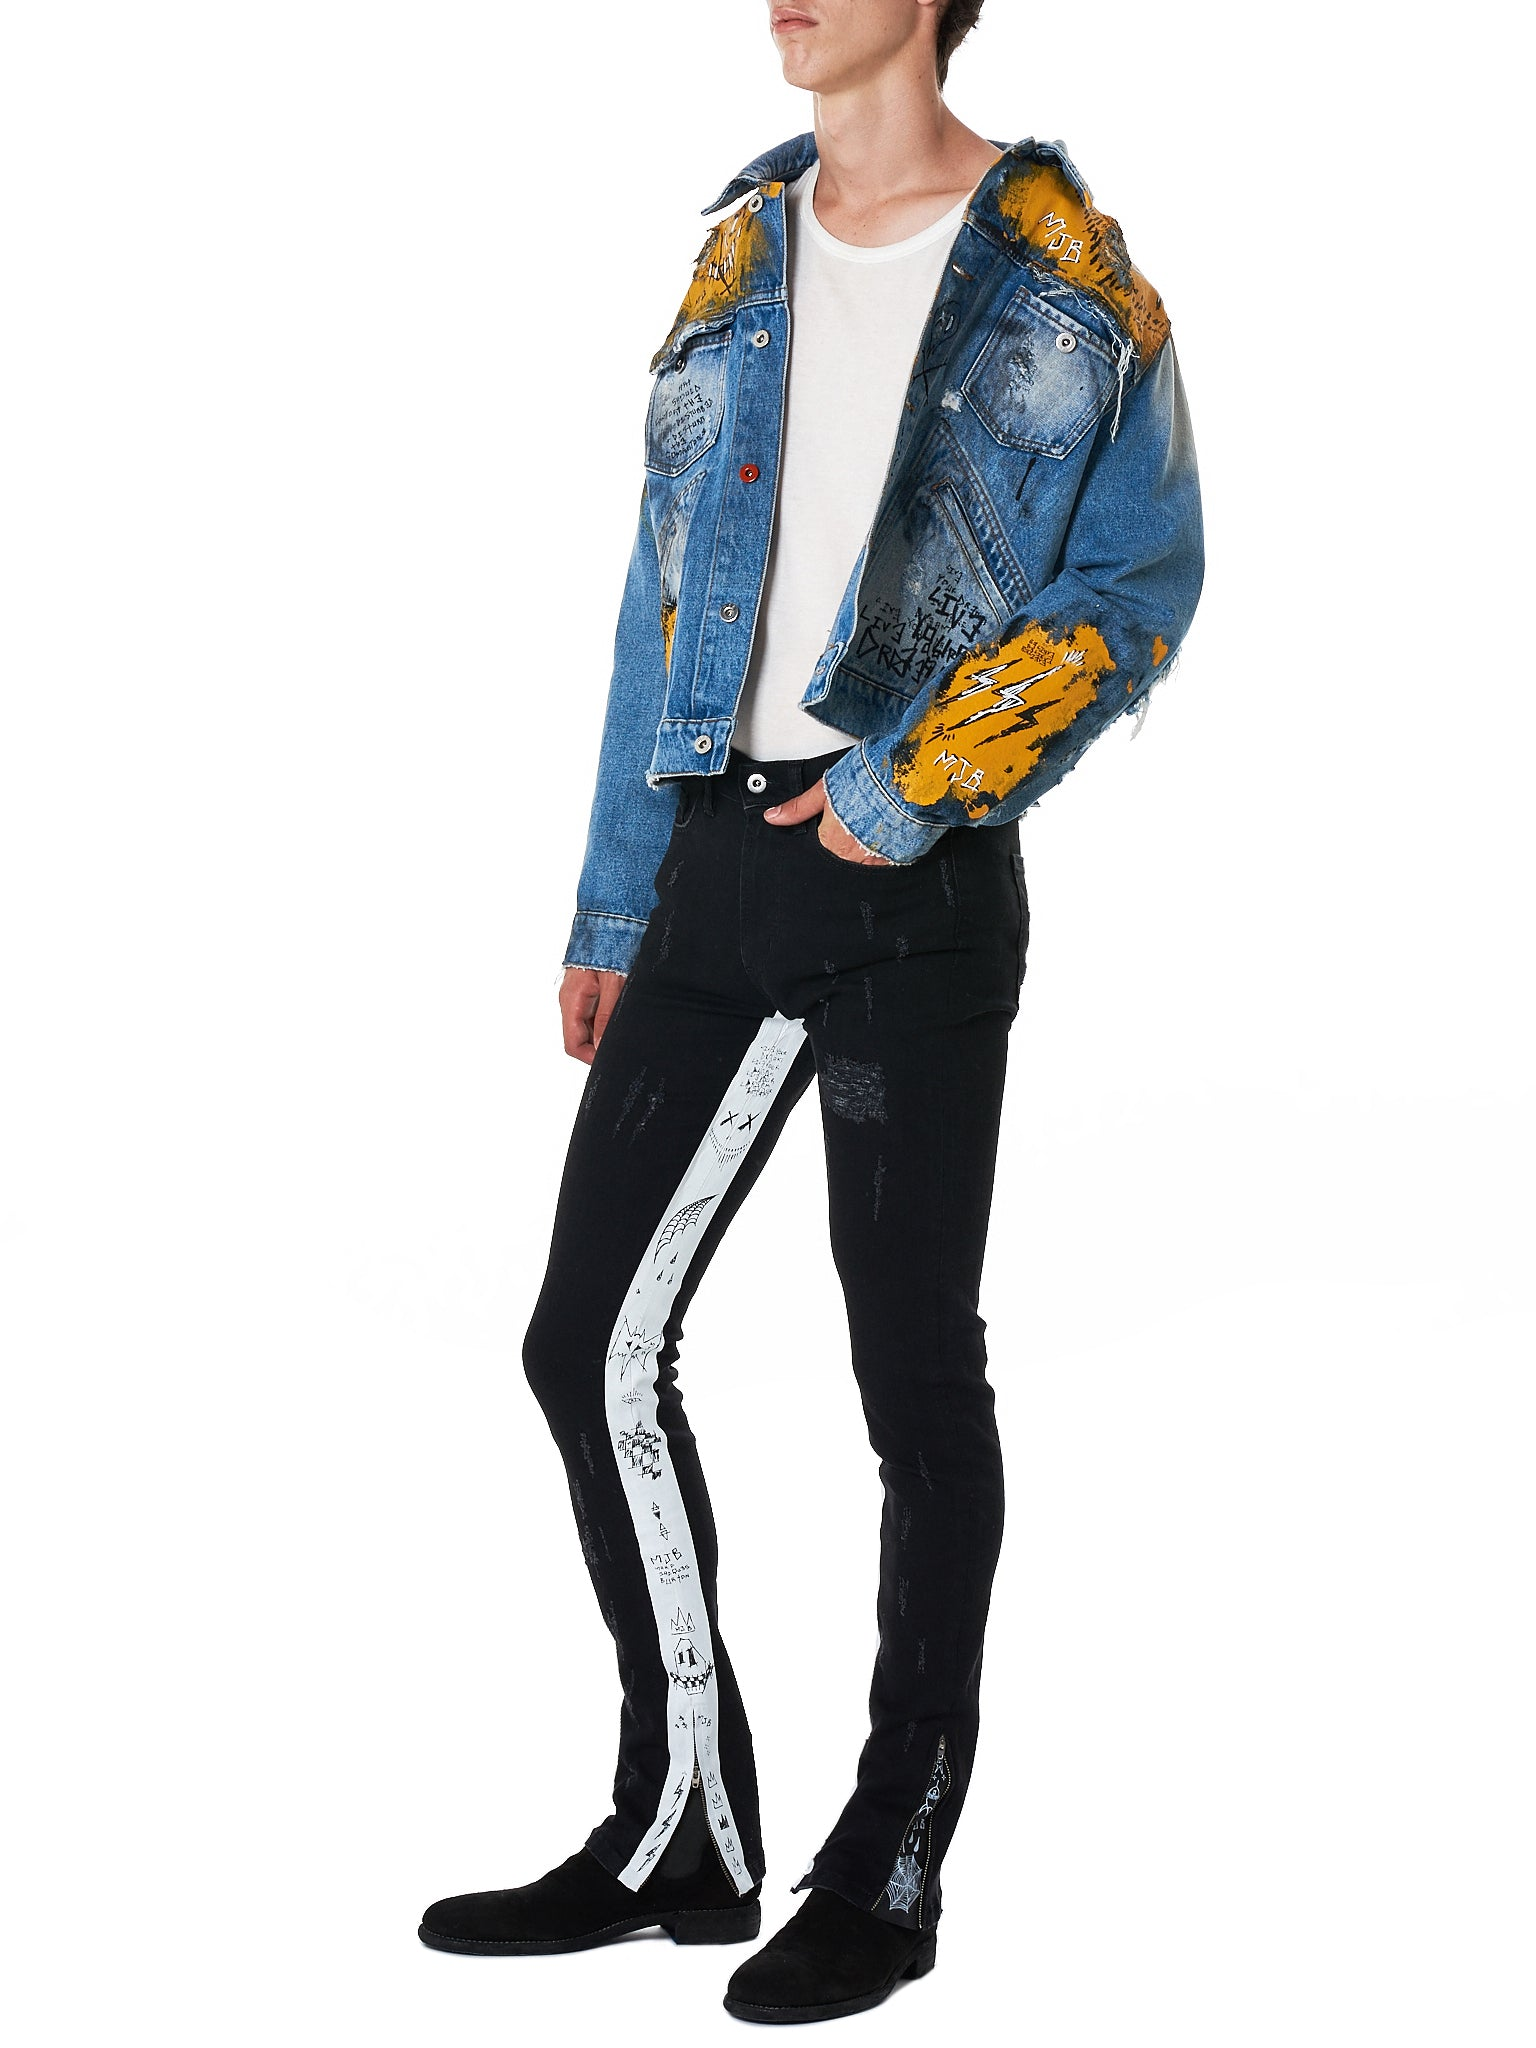 MJB (Marc Jacques Burton) Denim Jacket - Hlorenzo Style